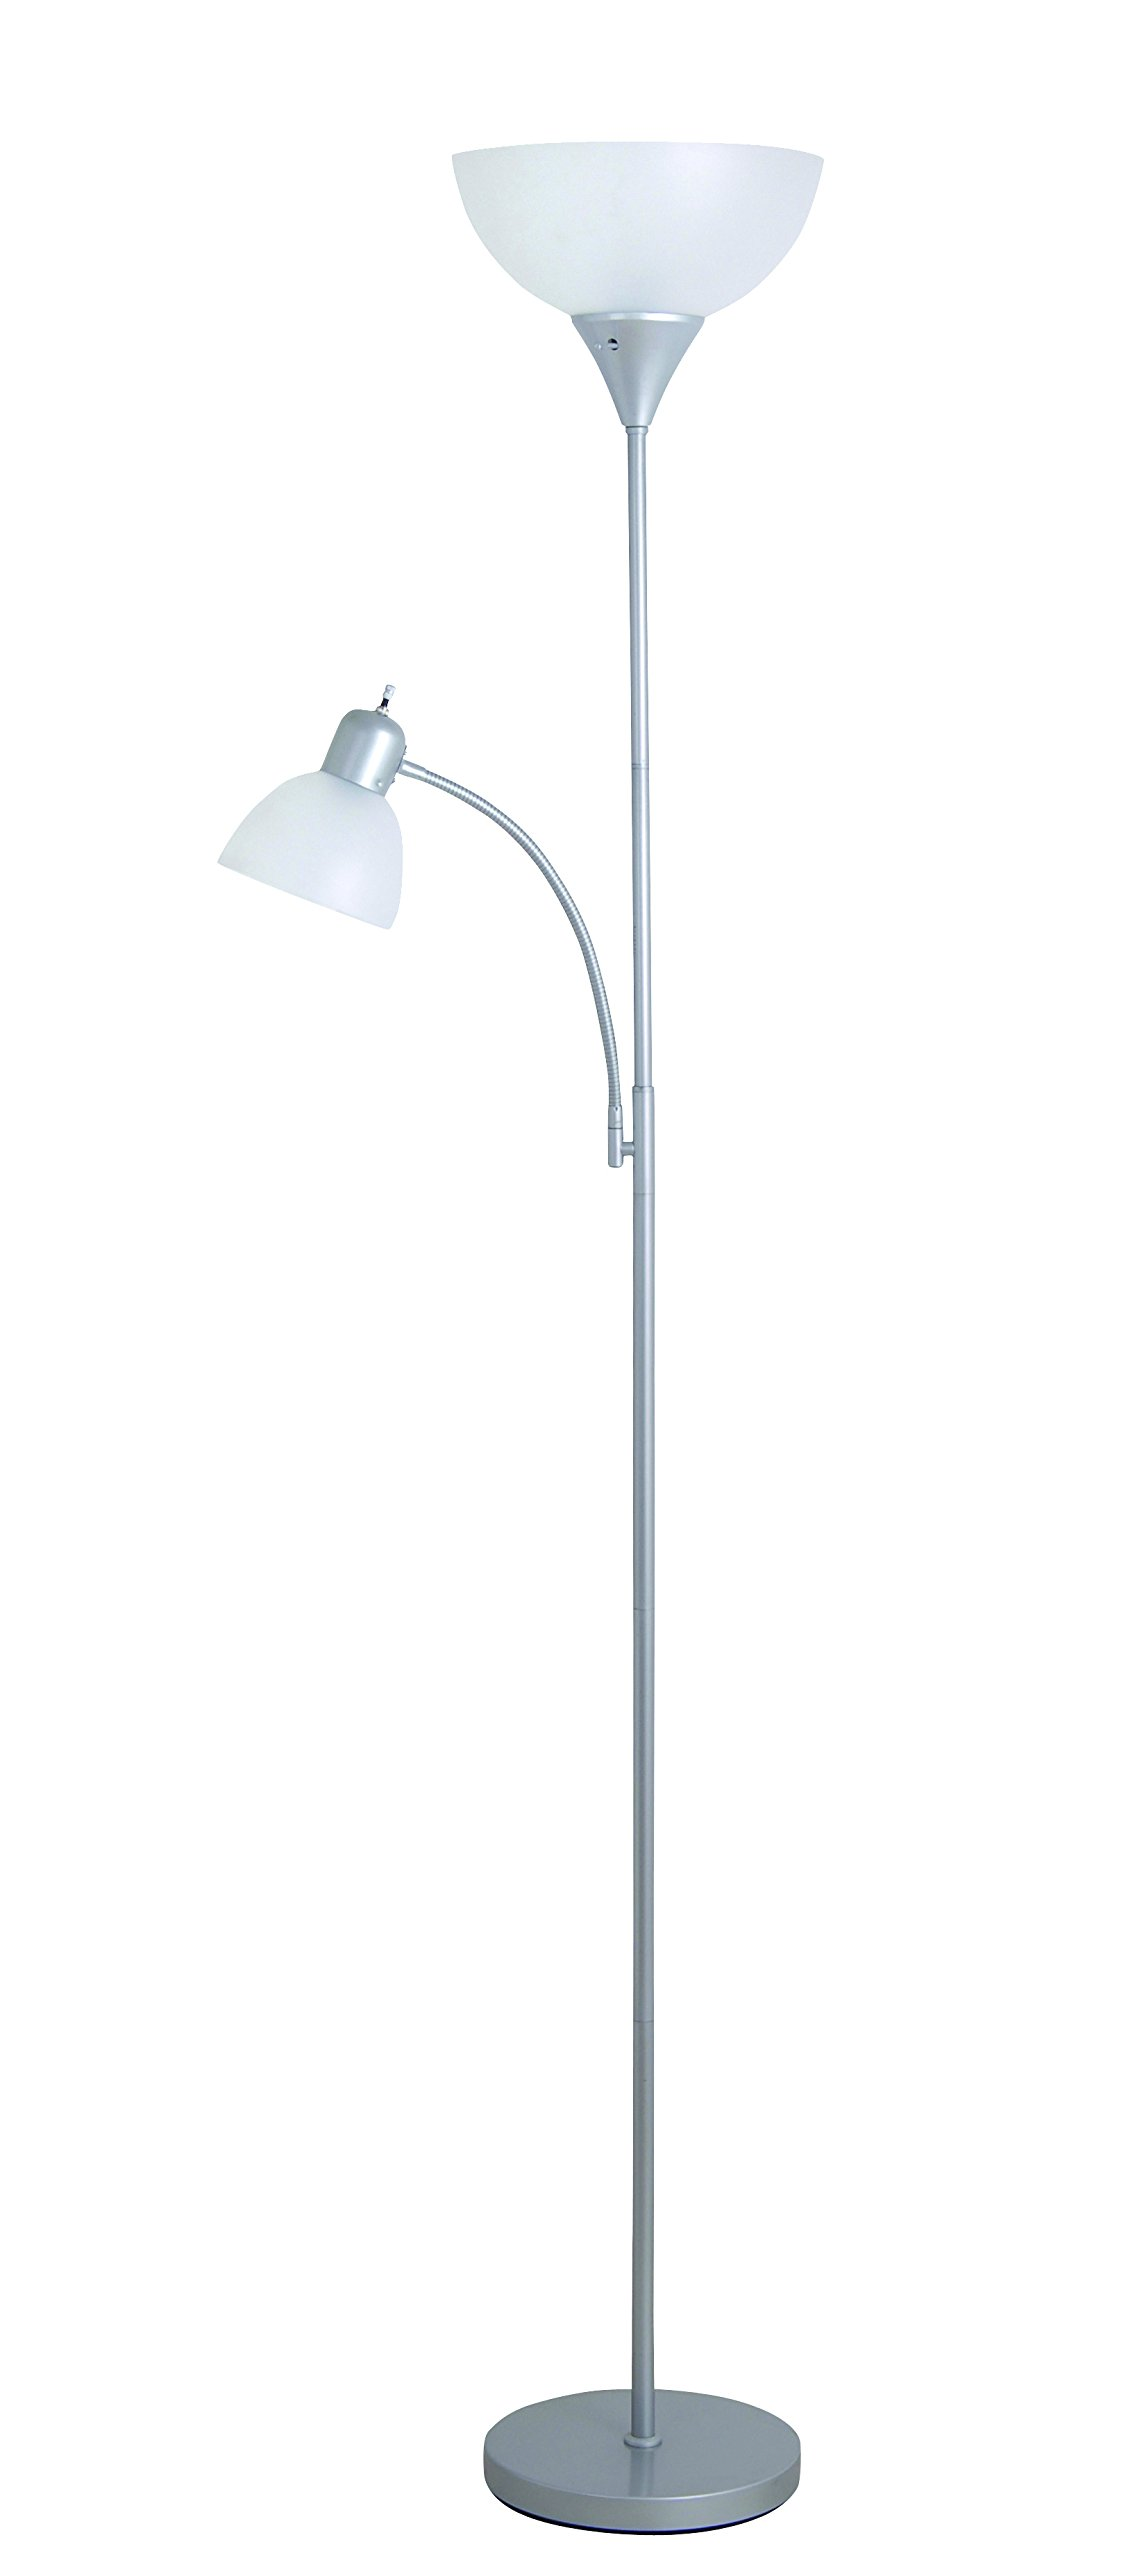 Catalina Lighting 17939-006 Macobey Torchiere Floor Lamp with Adjustable Reading Light and White Shades, 71'', Silver